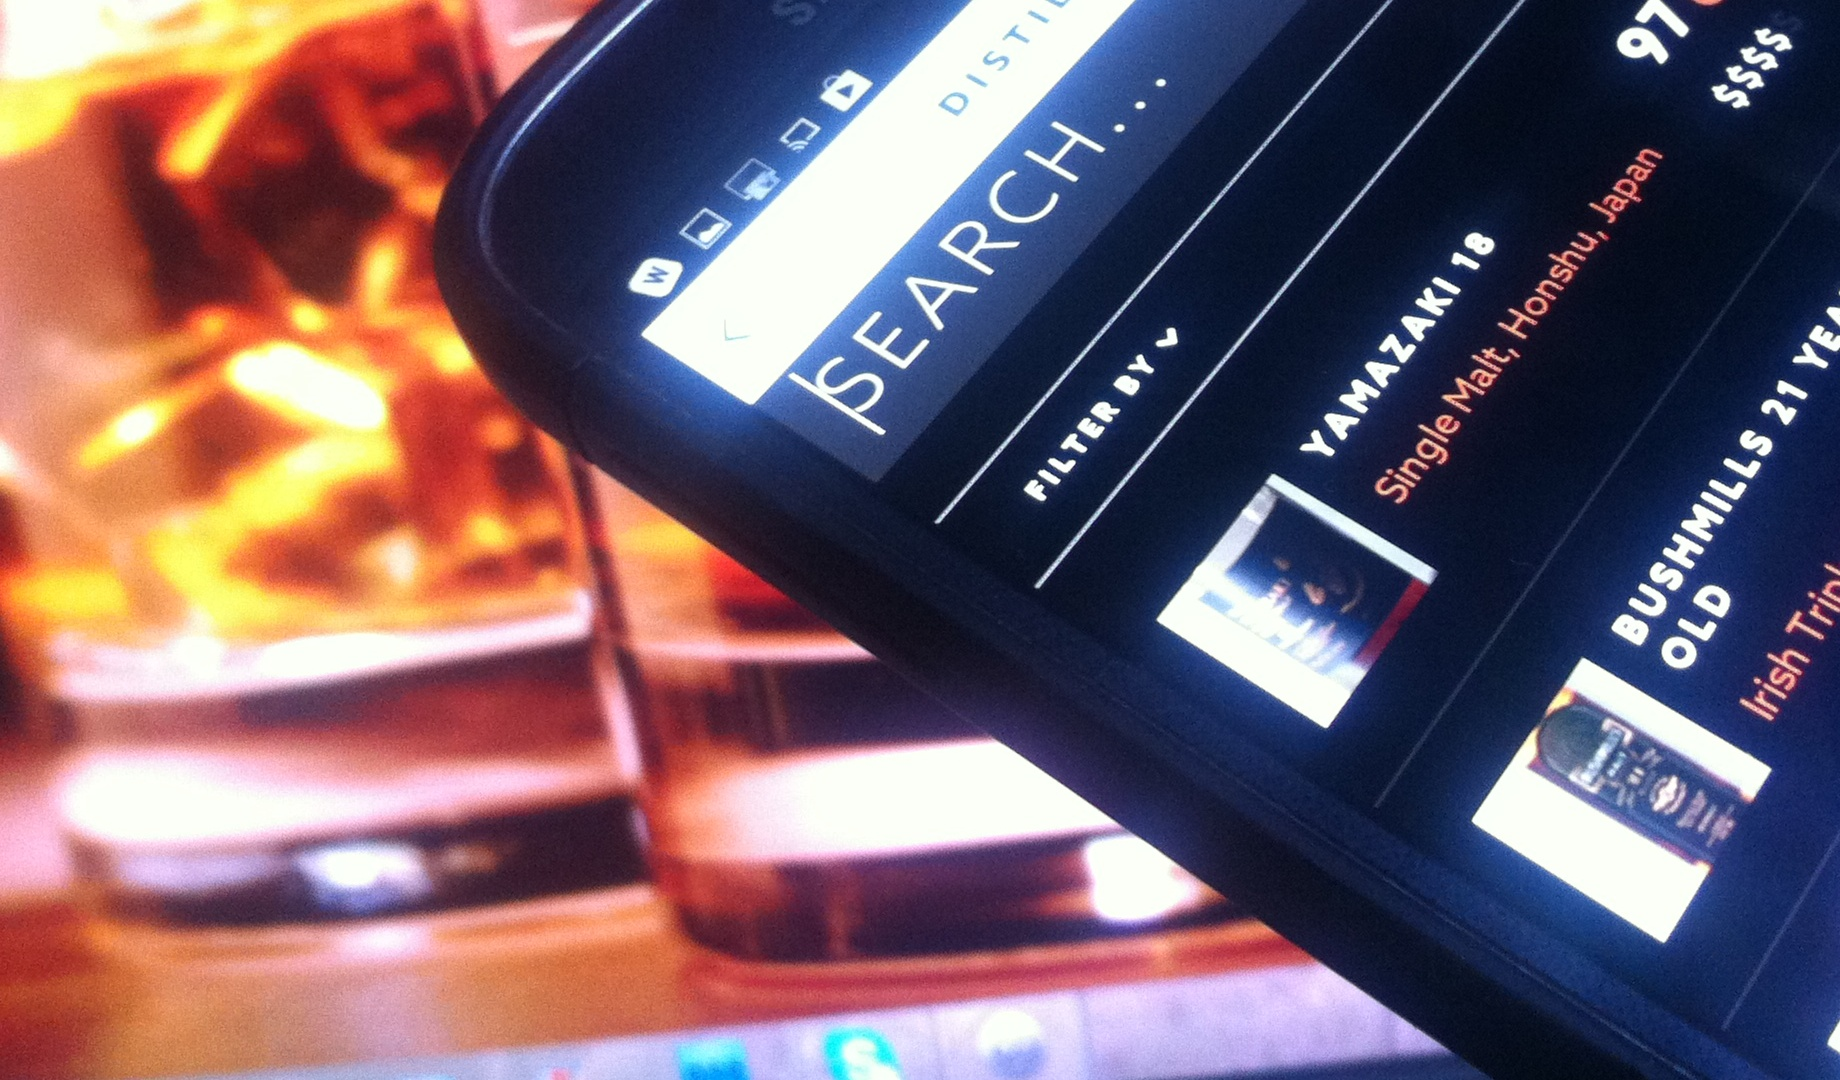 Distiller for Android: Whisky Drinker's Companion